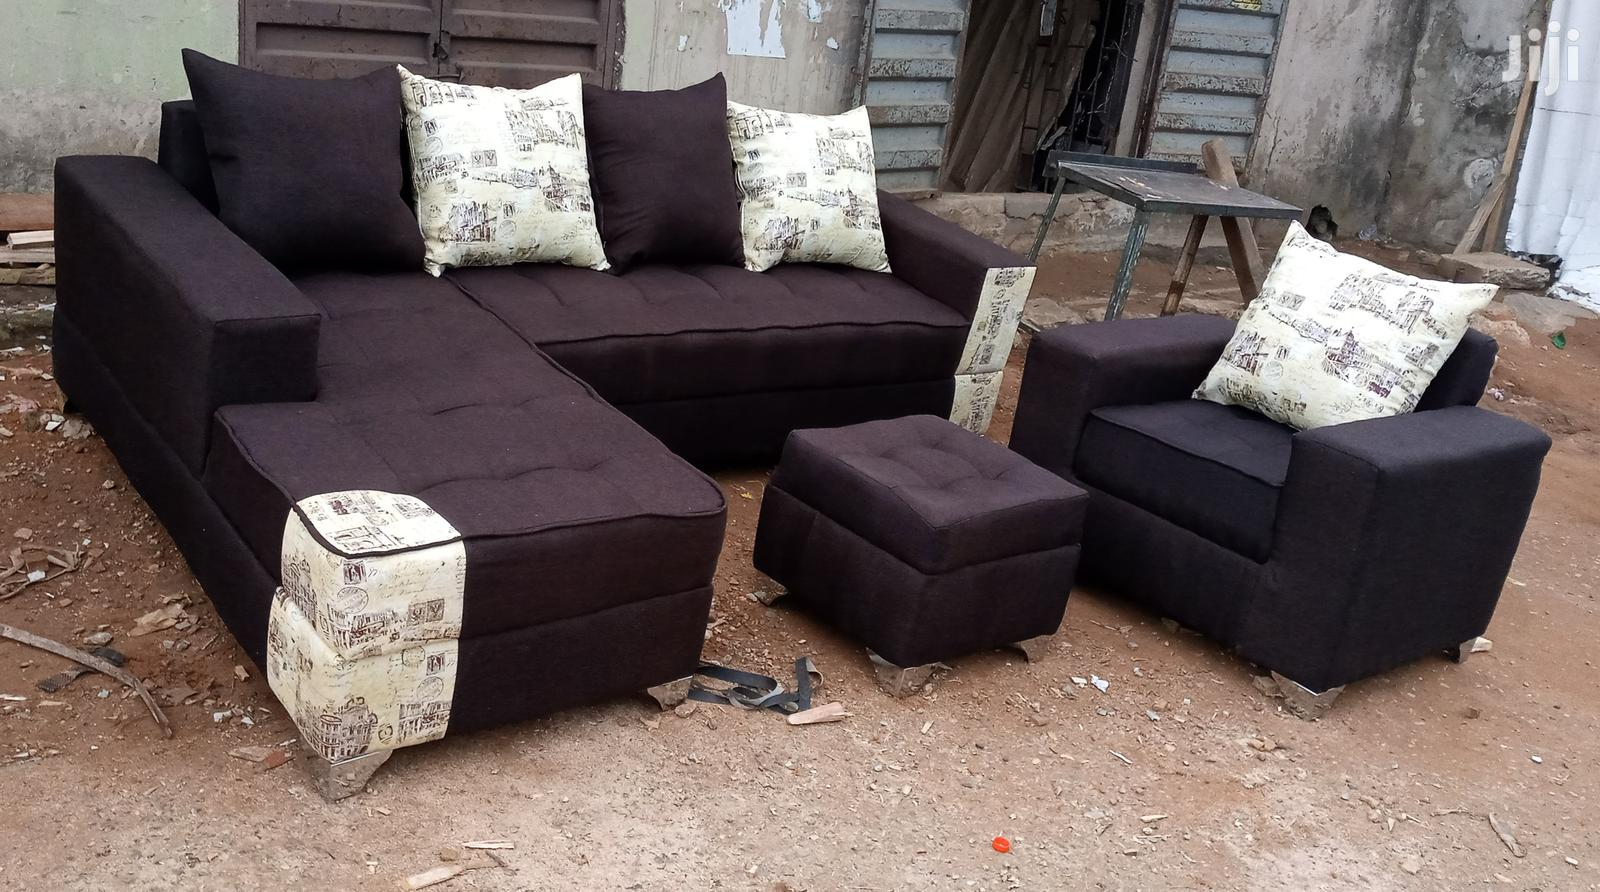 Picture of: Archive L Shaped Sofas And Single Seater Chair With Ottoman Dark Brown Couch In Ikorodu Furniture Prefix E Jiji Ng